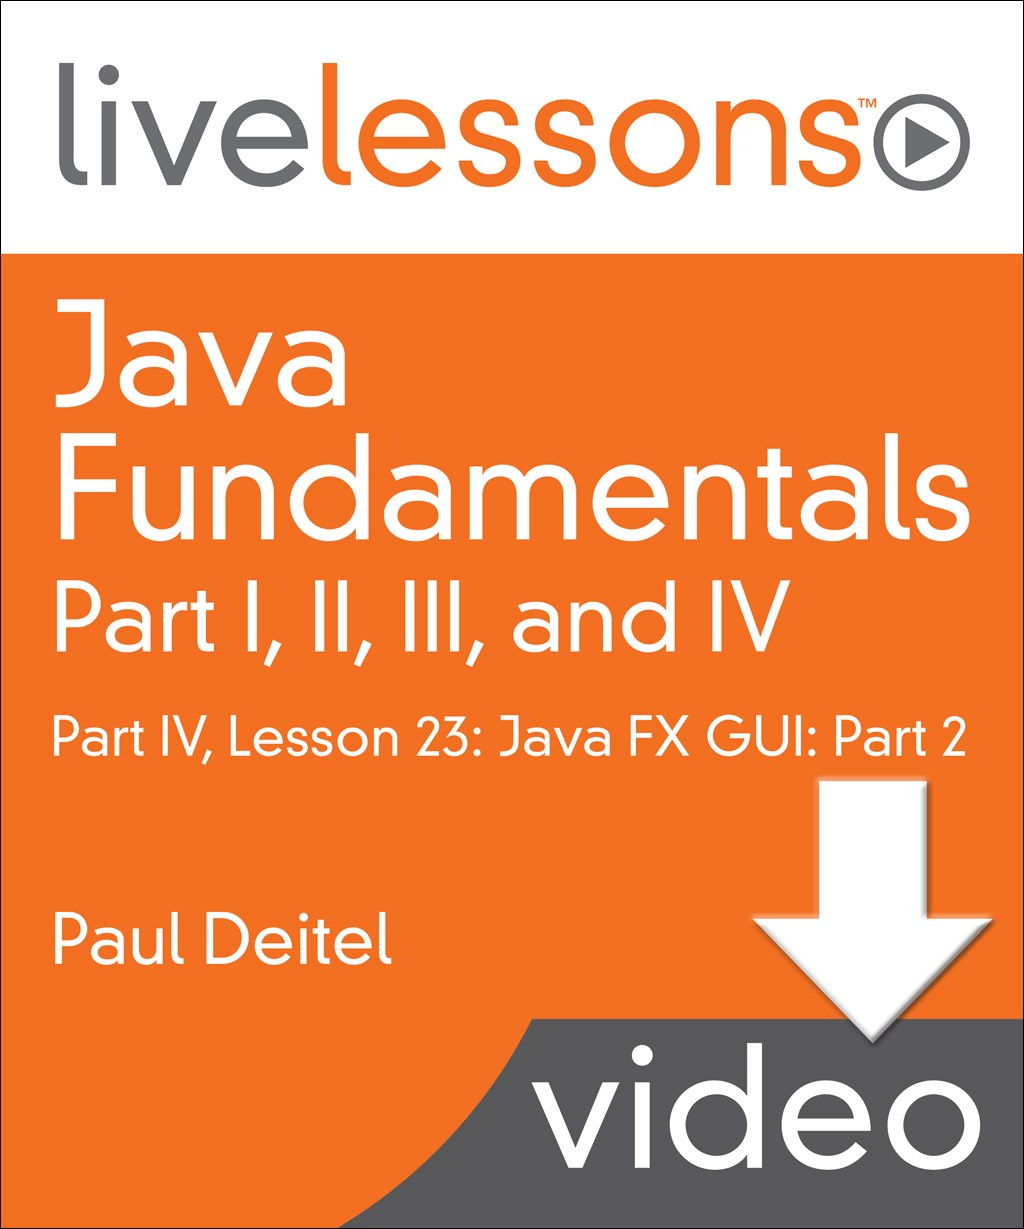 Java Fundamentals LiveLessons Parts I, II, III, and IV (Video Training): Part IV, Lesson 23: Java FX GUI: Part 2, Downloadable Version